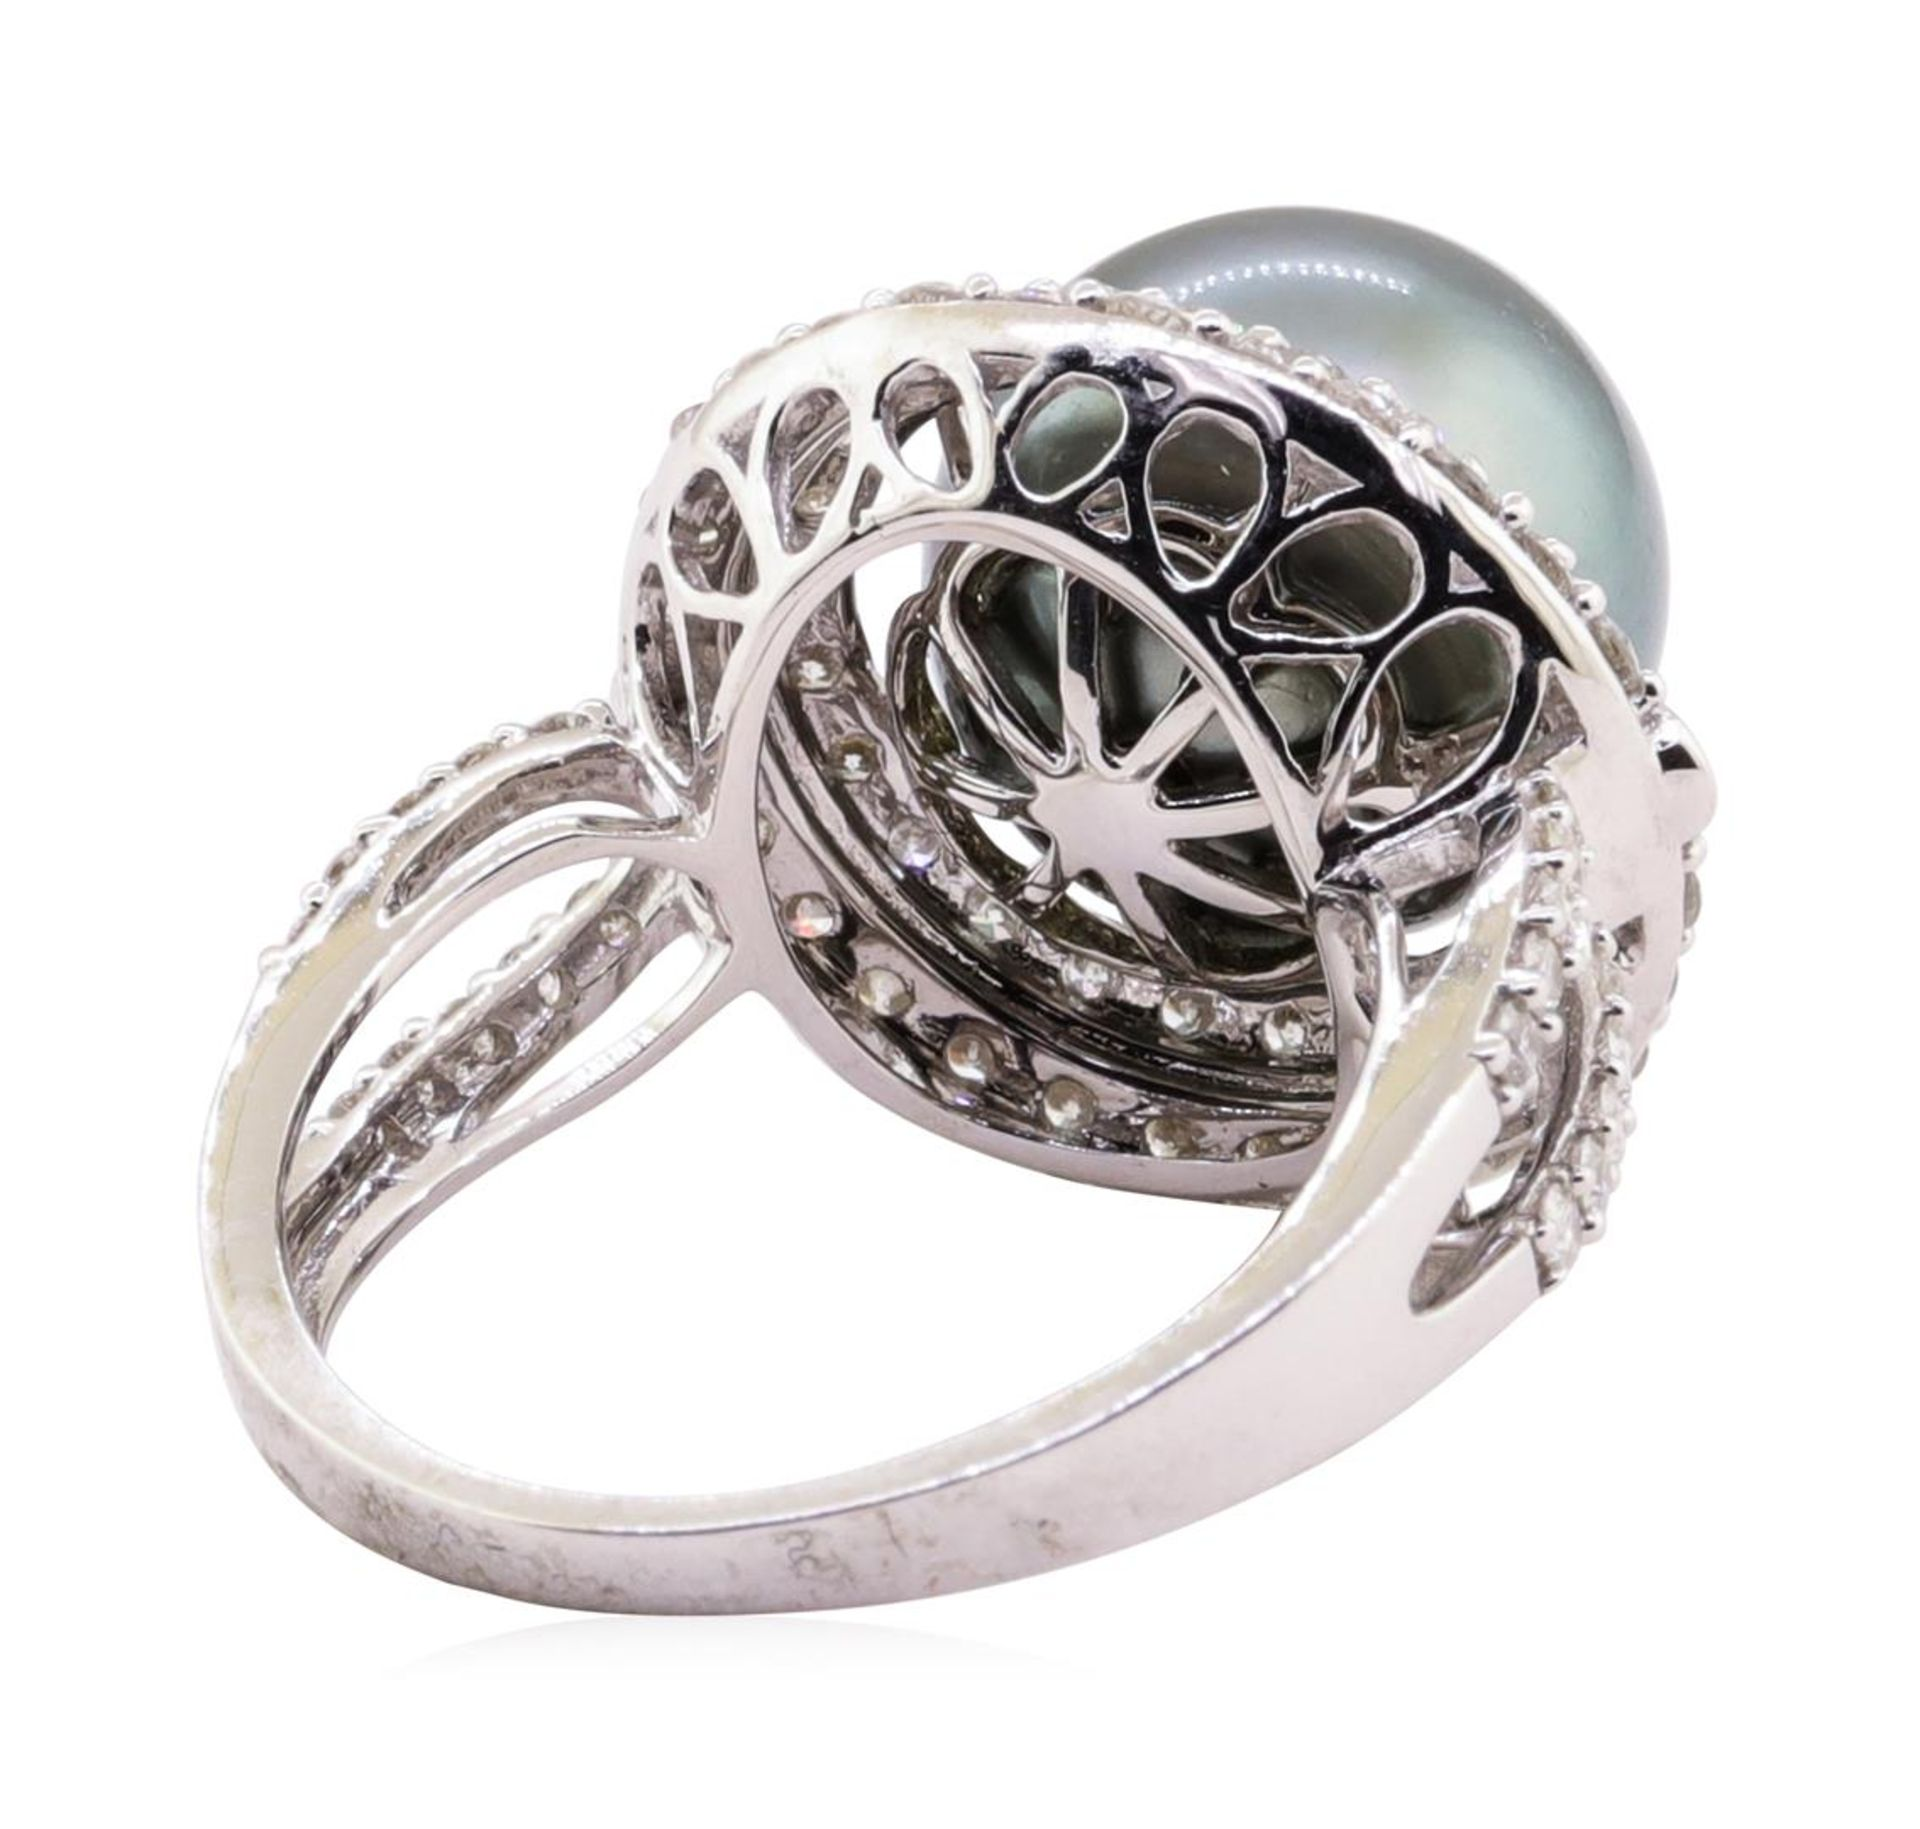 Tahitian Pearl and Diamond Ring - 18KT White Gold - Image 3 of 5